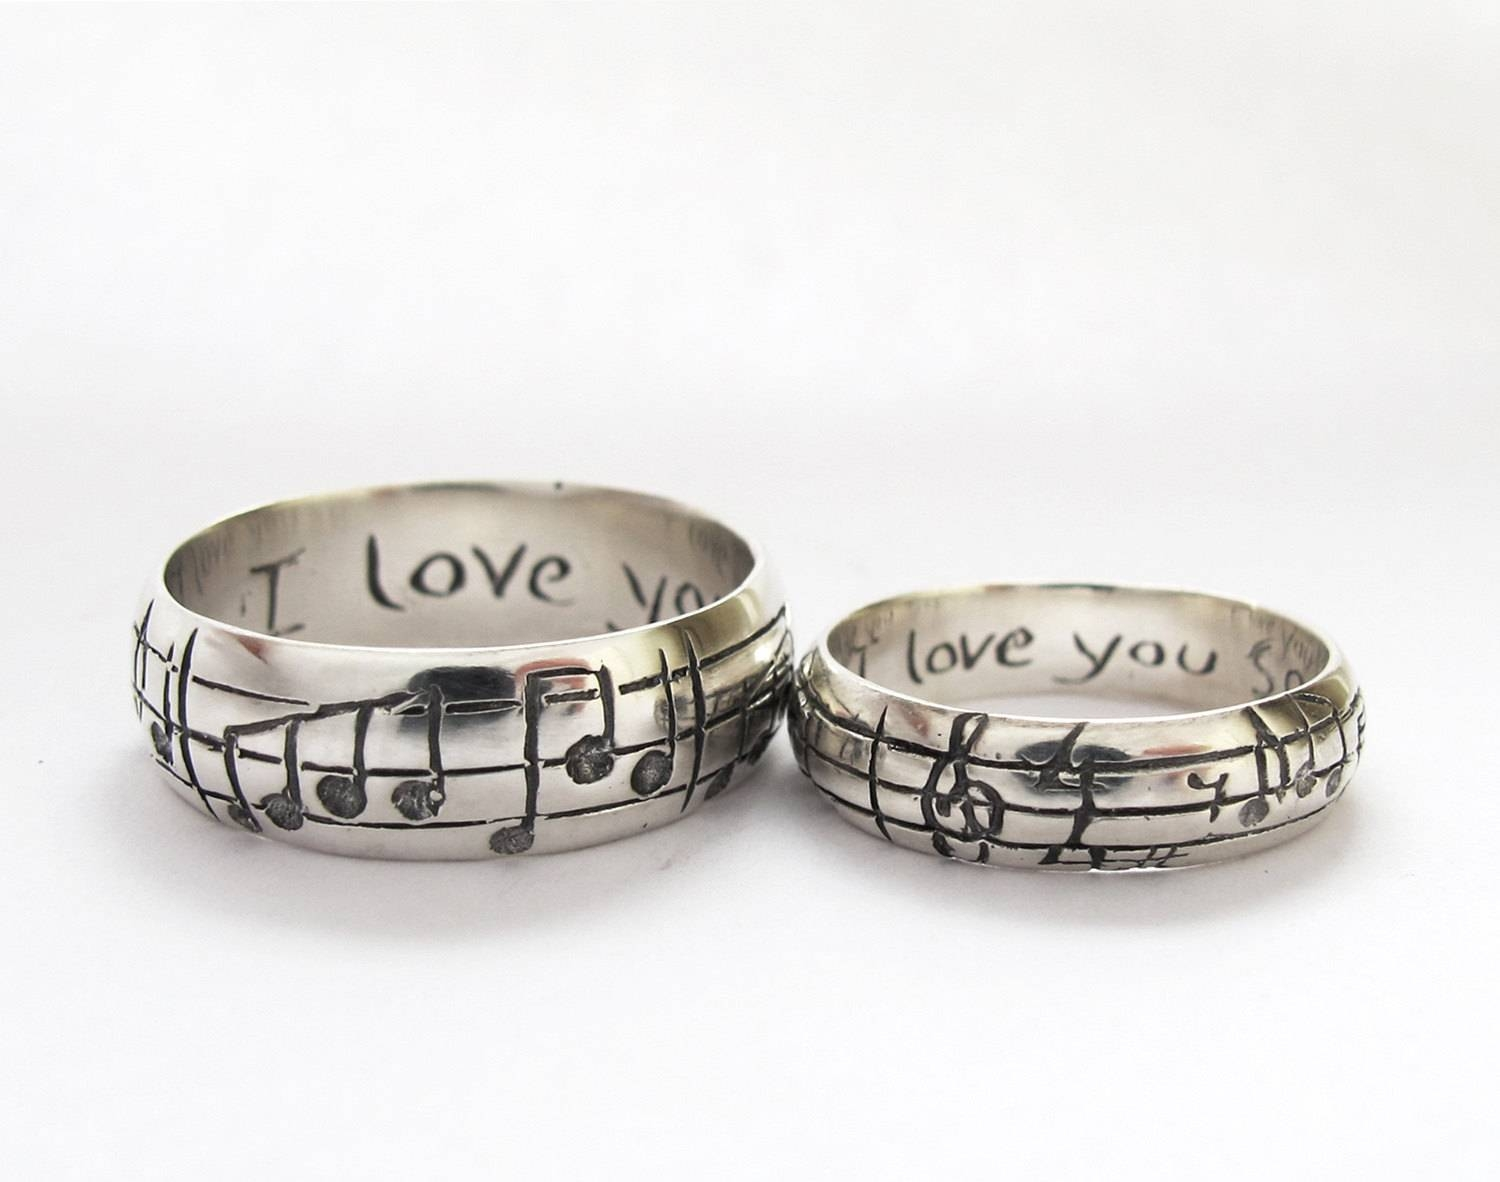 Wedding Rings : Coolest Wedding Rings Awesome Wedding Rings Bands Throughout Unconventional Wedding Bands (View 14 of 15)